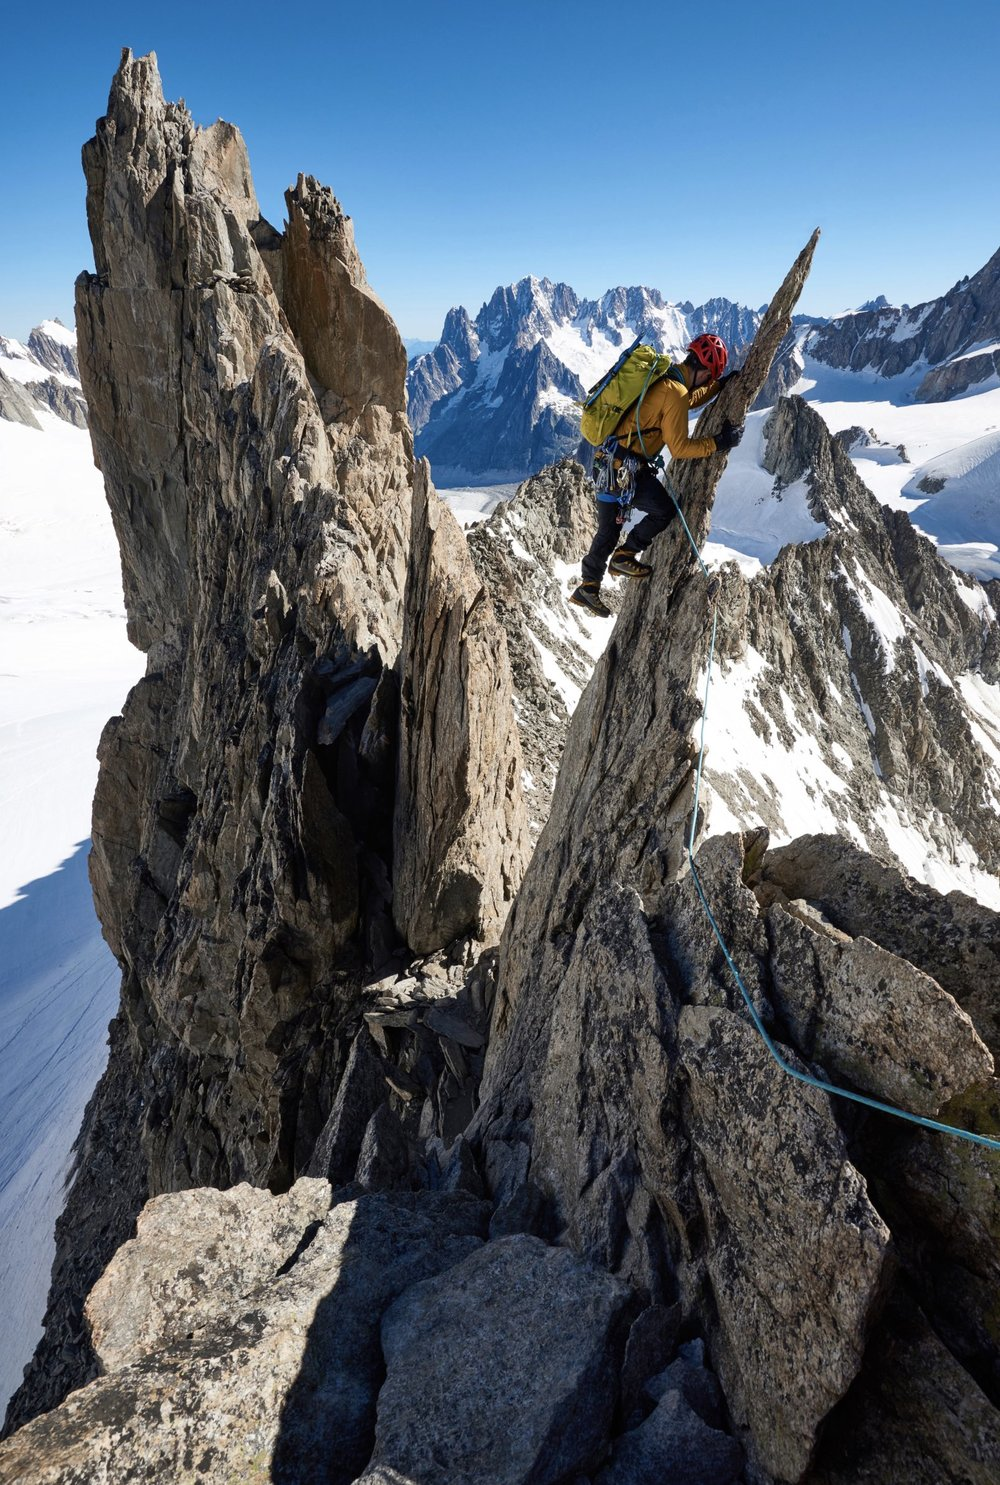 Following The Course, I Spent A Further Few Days In The Alps Climbing With A